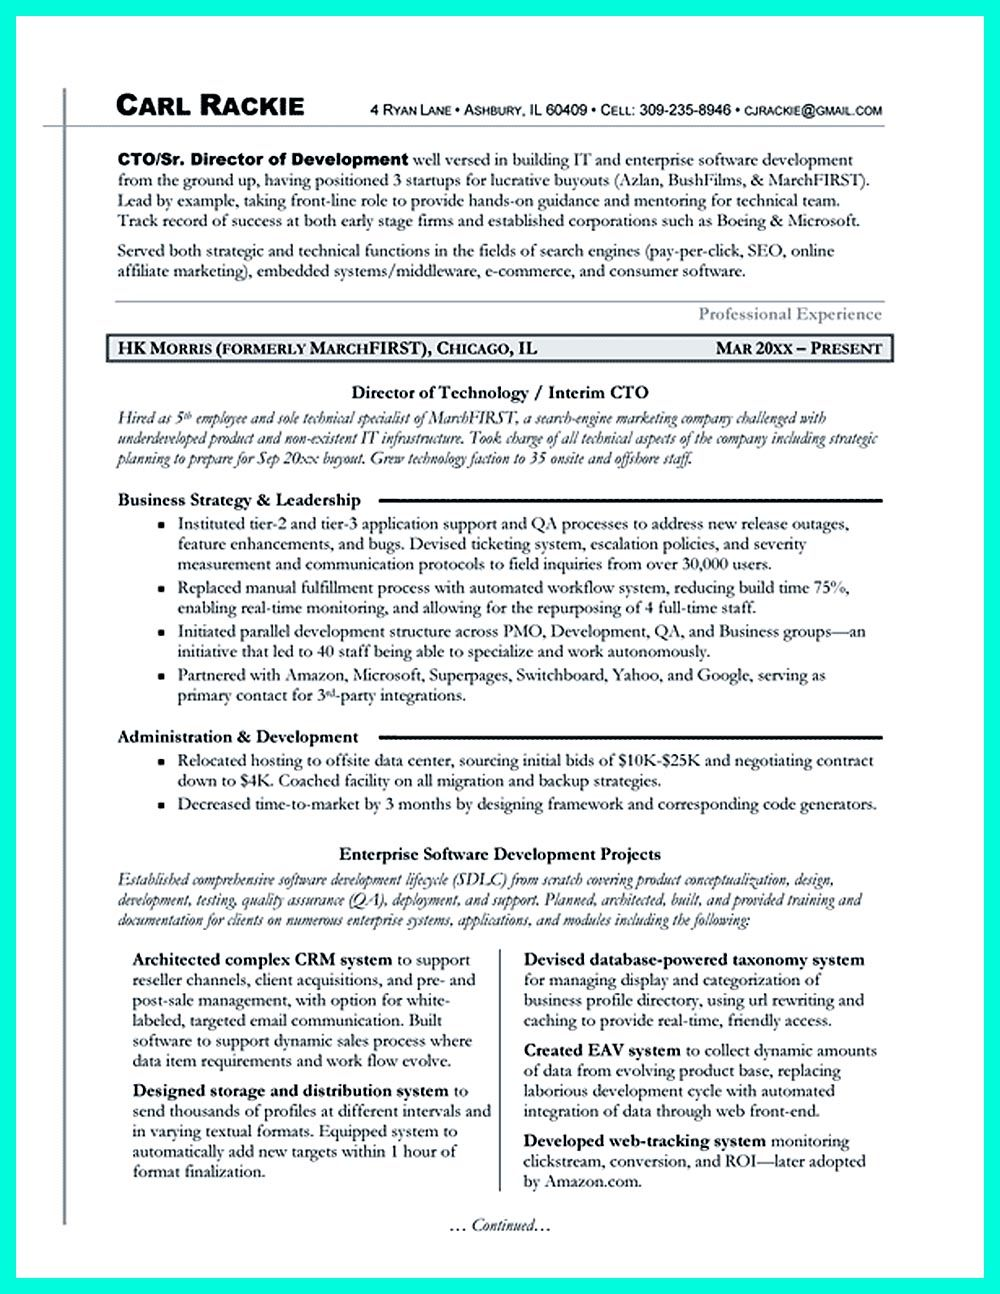 cto resume or chief technical officer resume can be considered as resume for senior level technology resume examples - Cto Resume Examples